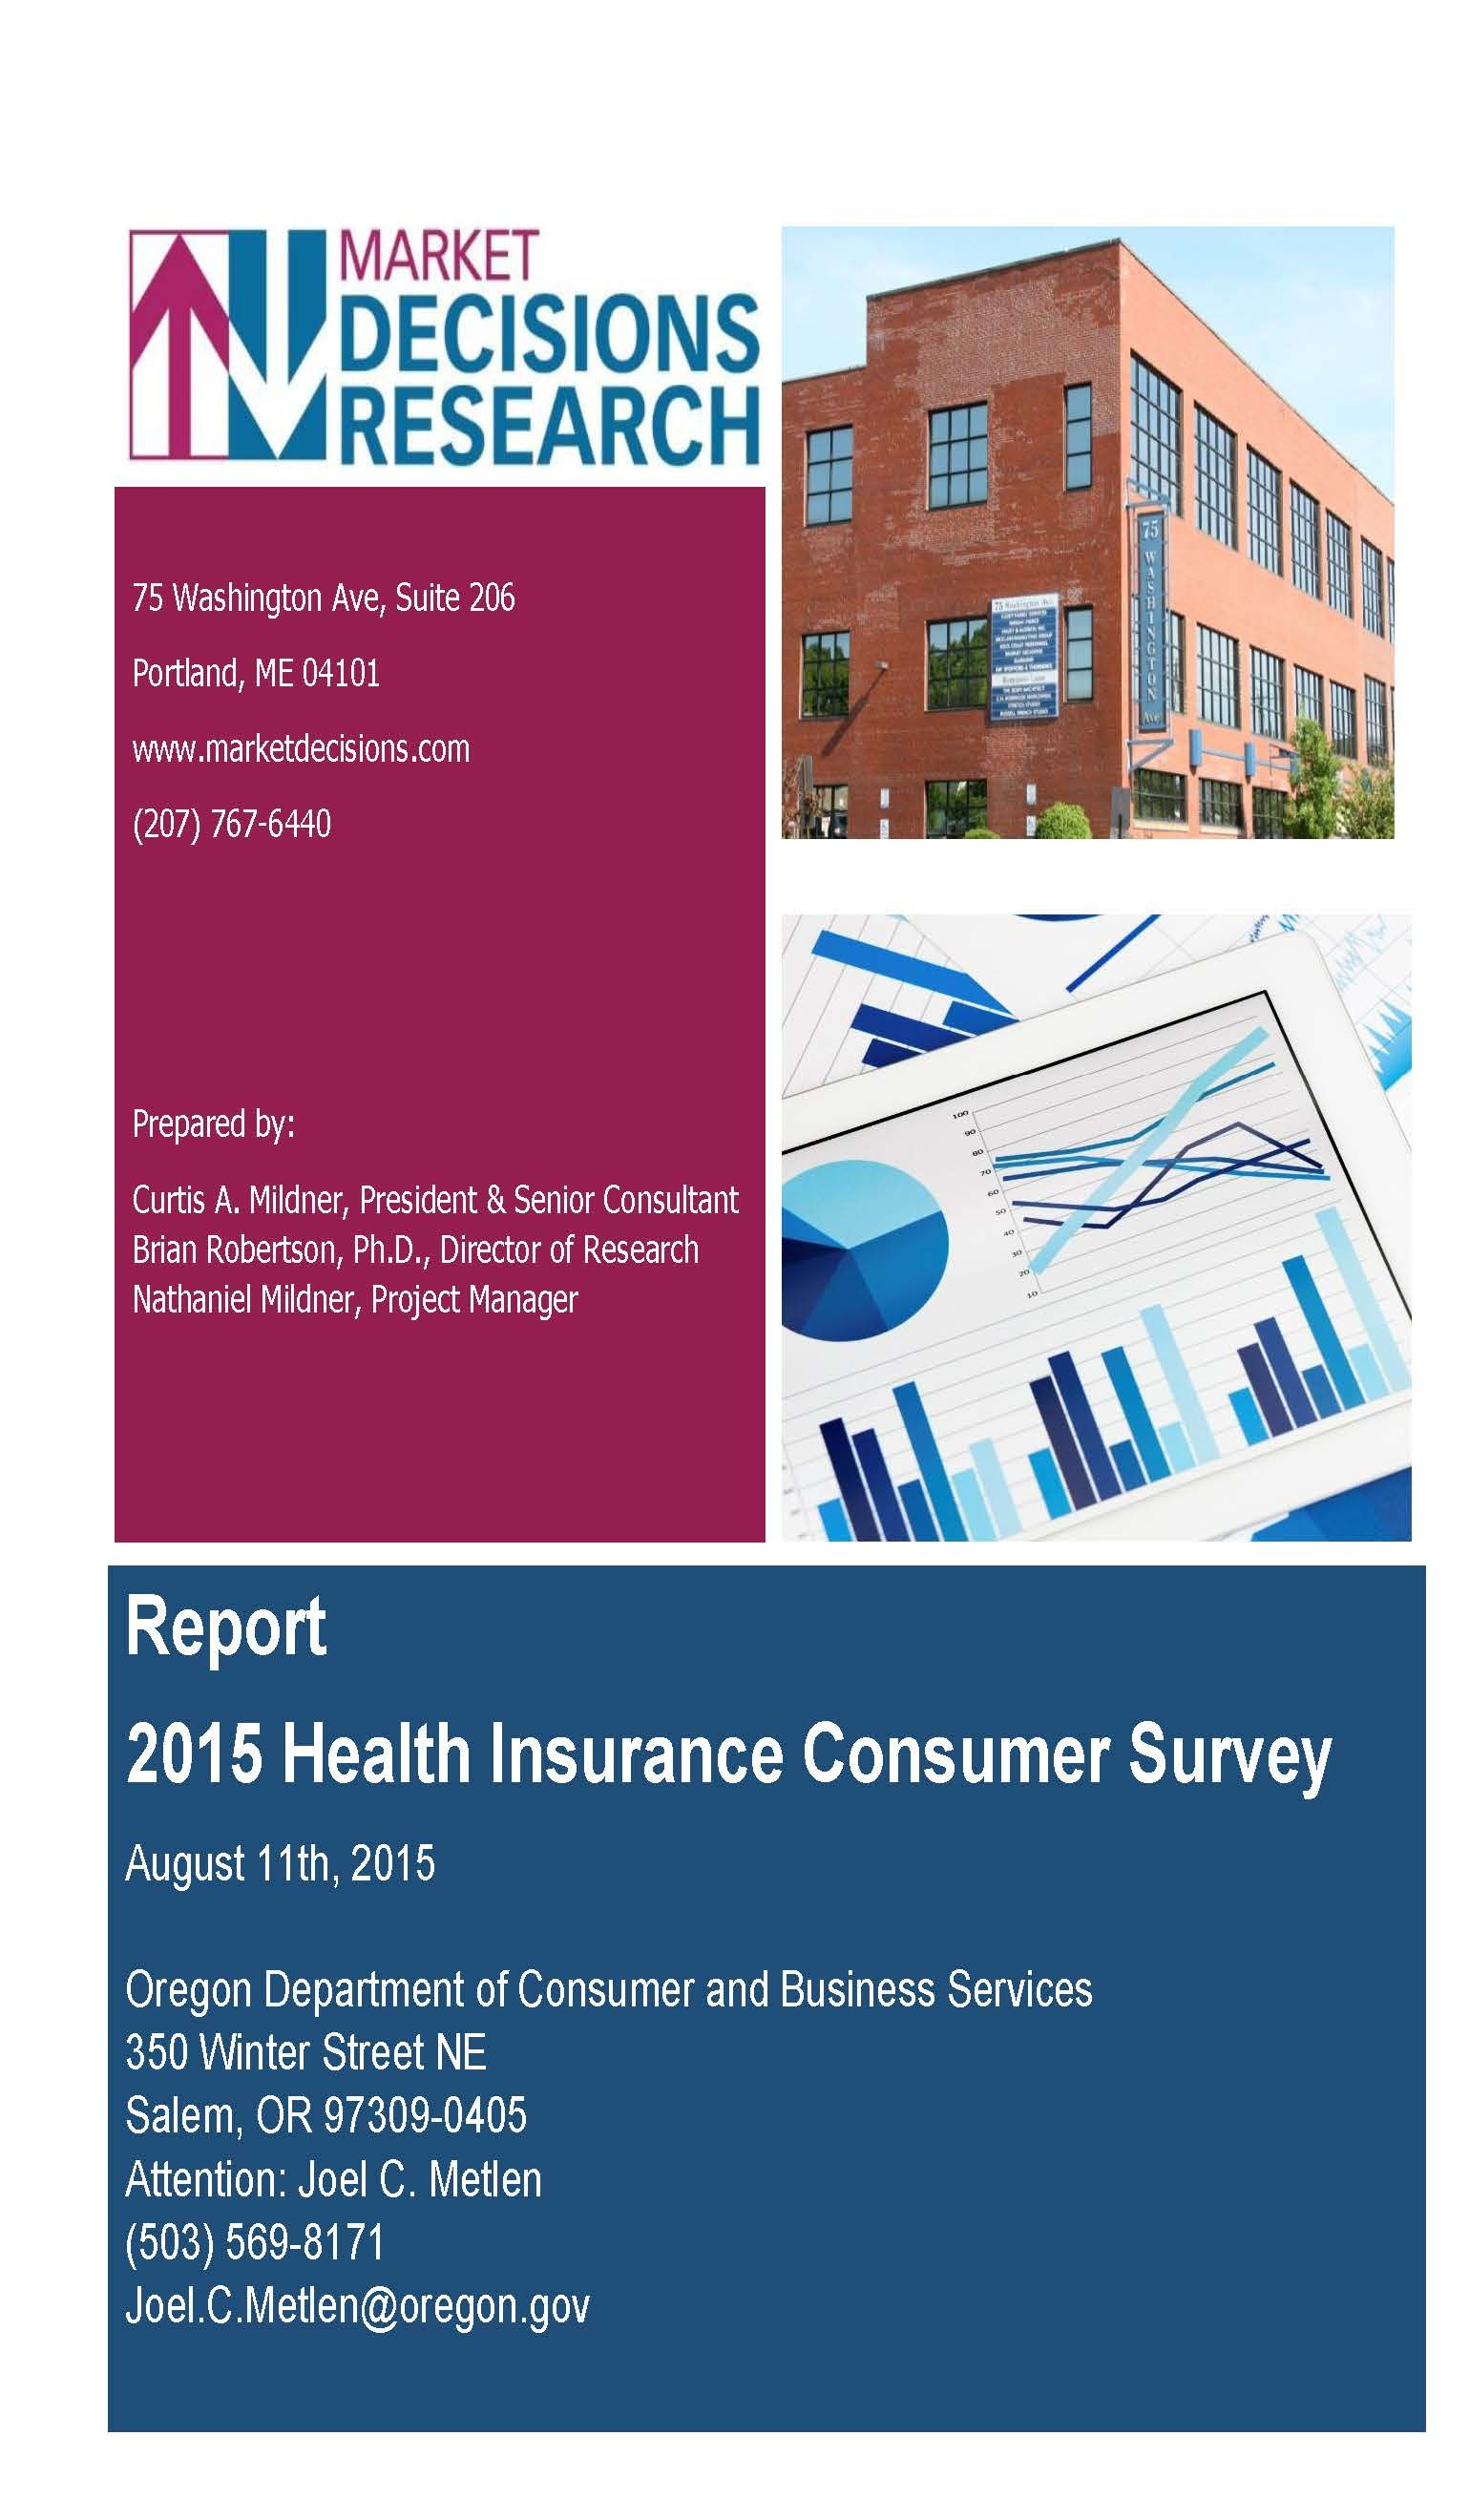 Report 2015 health insurance consumer survey, by the